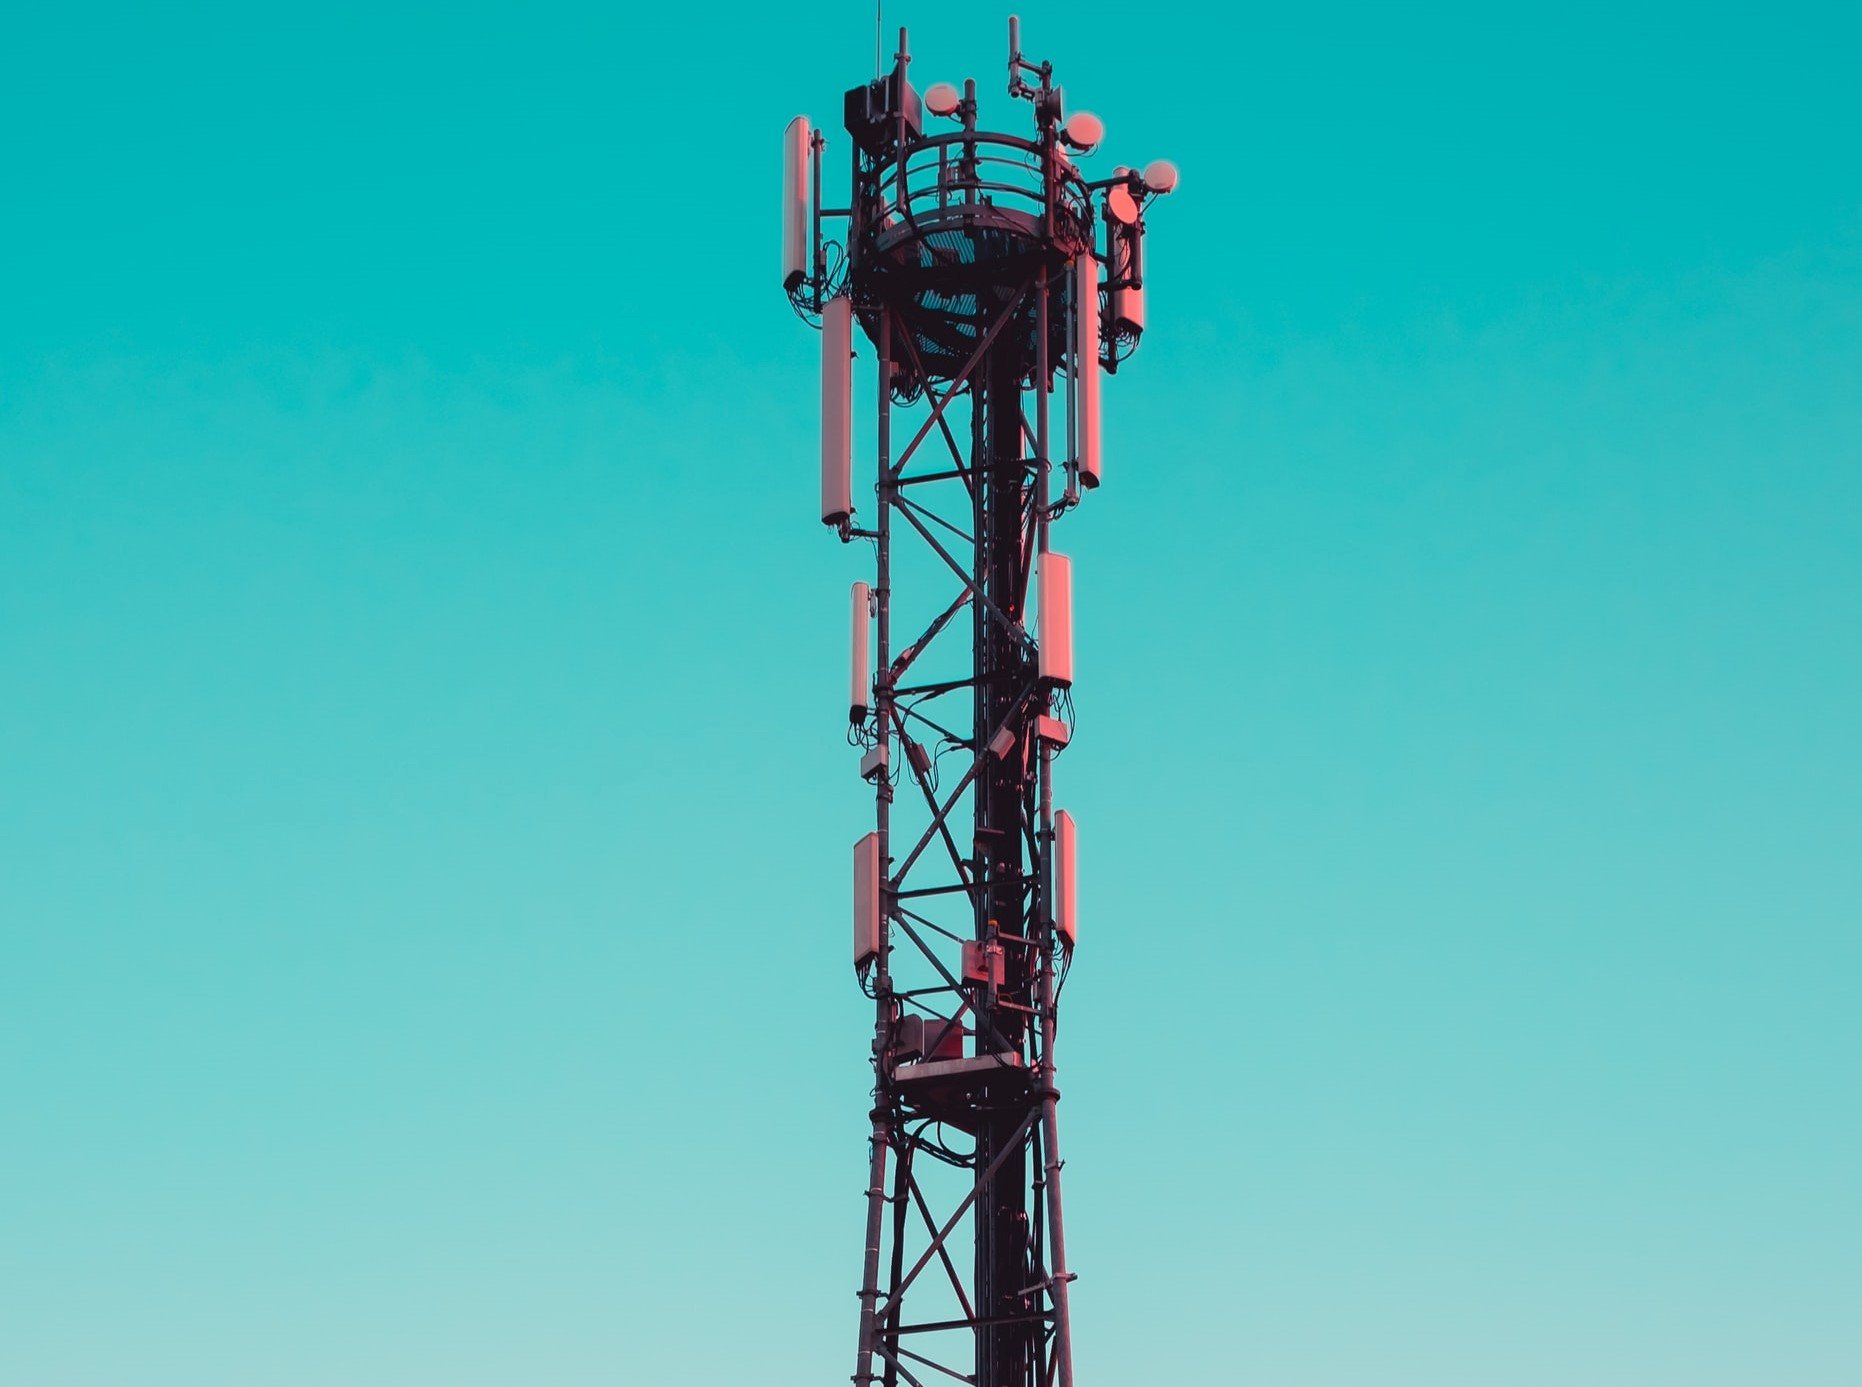 mobile mast against bright blue backdrop